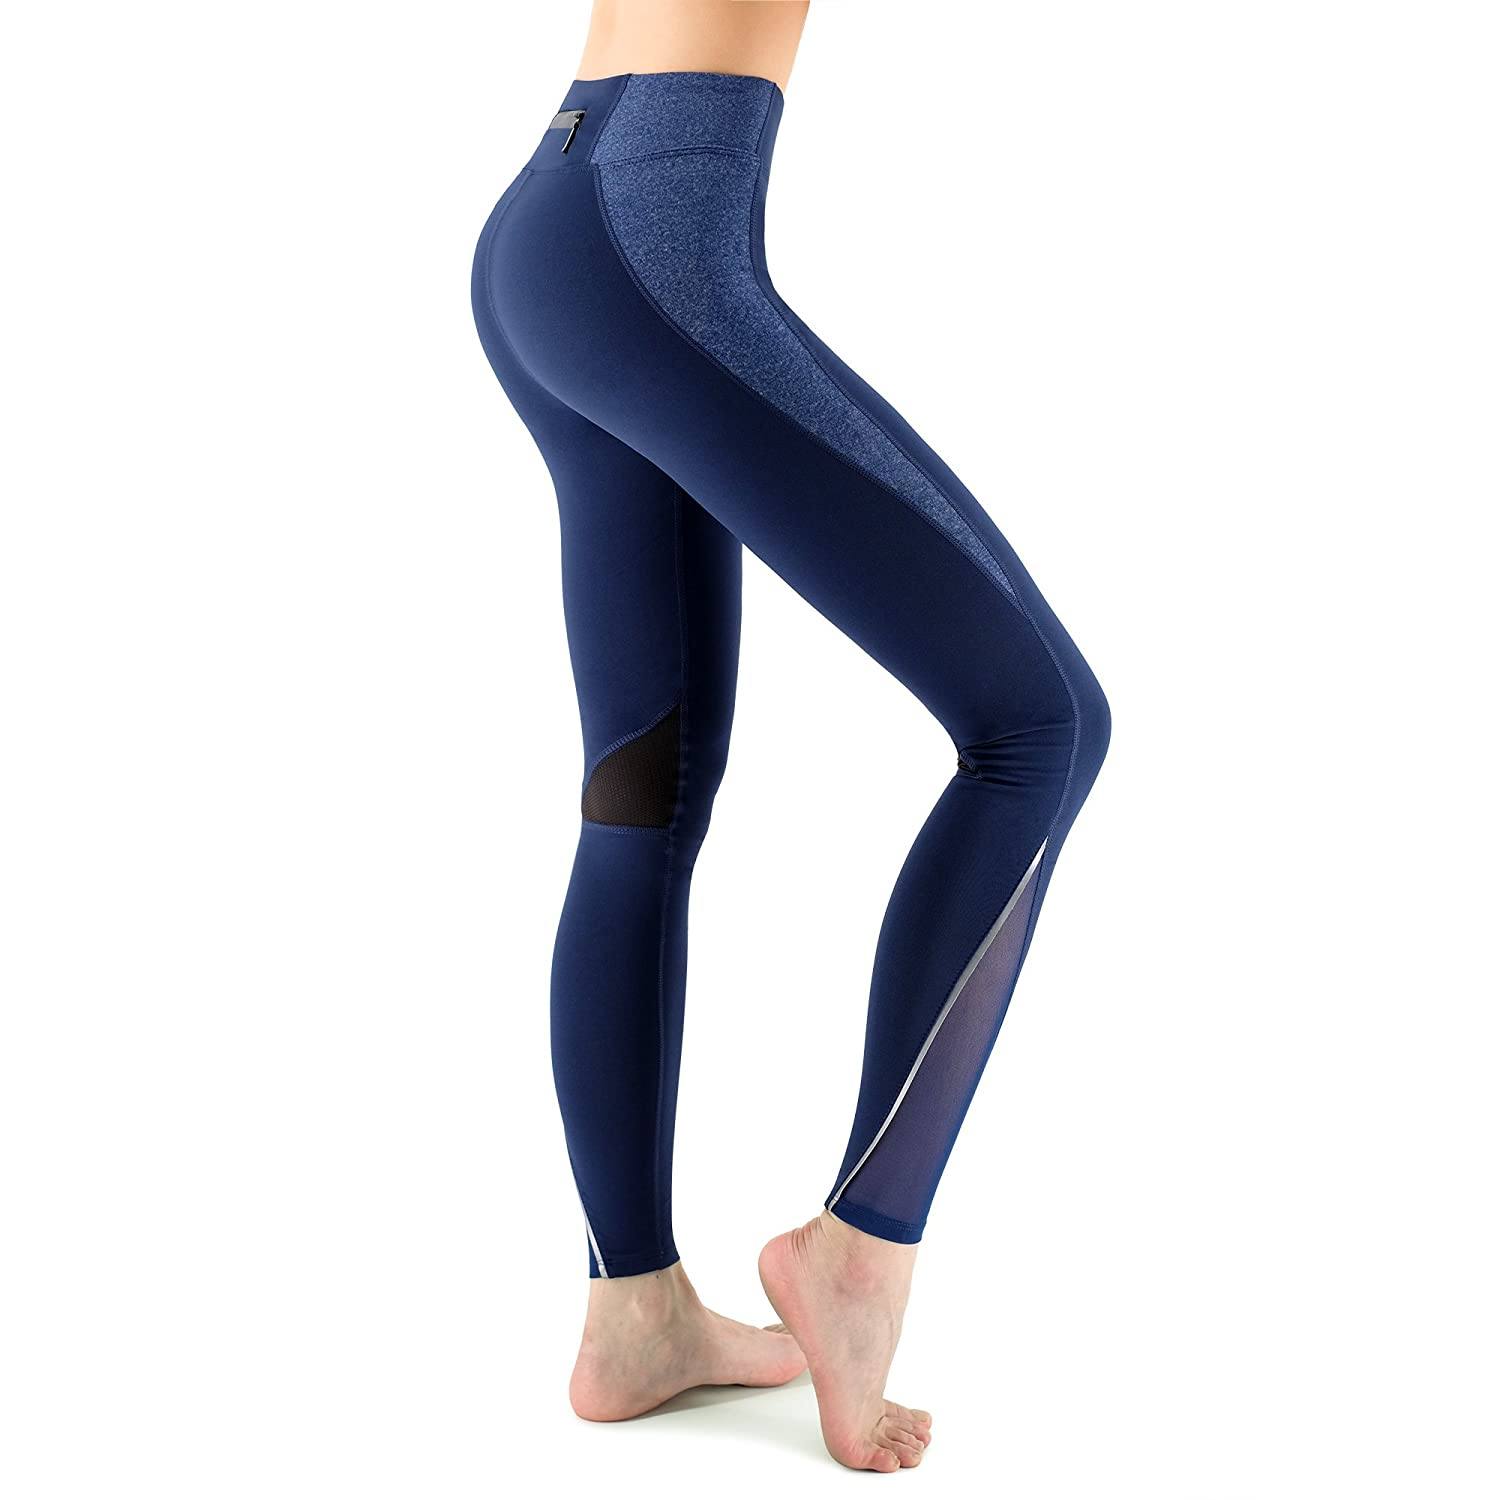 Zenwow Women's Sports Leggings High Waist Yoga Pants Gym Workout Running Tights Back Zipper Pocket